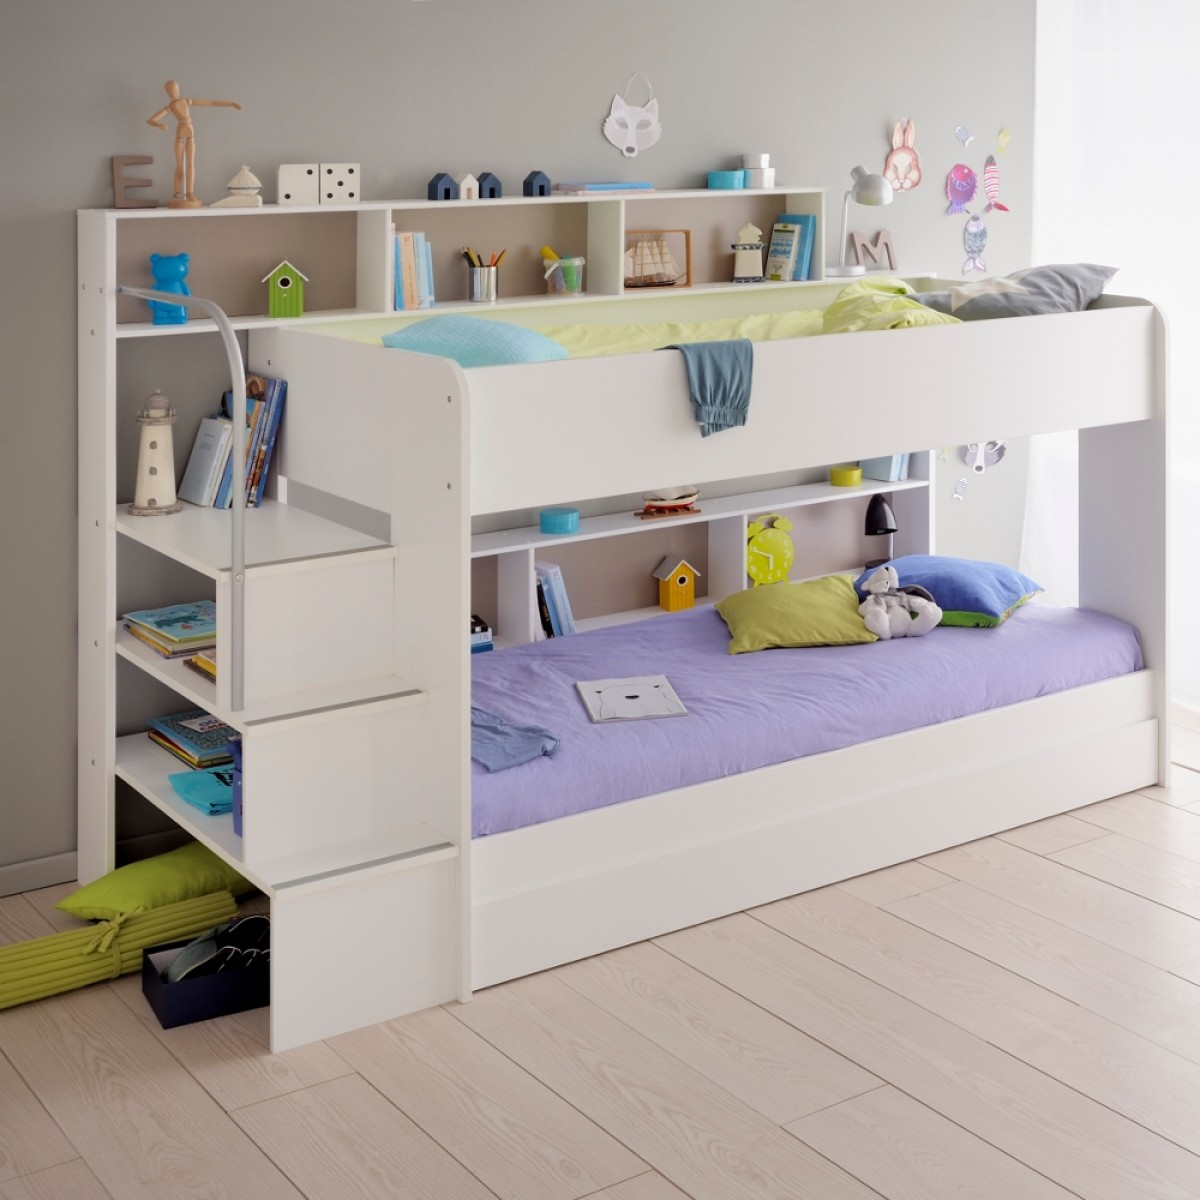 Bibop White Wooden Bunk Bed with Underbed Storage Drawer